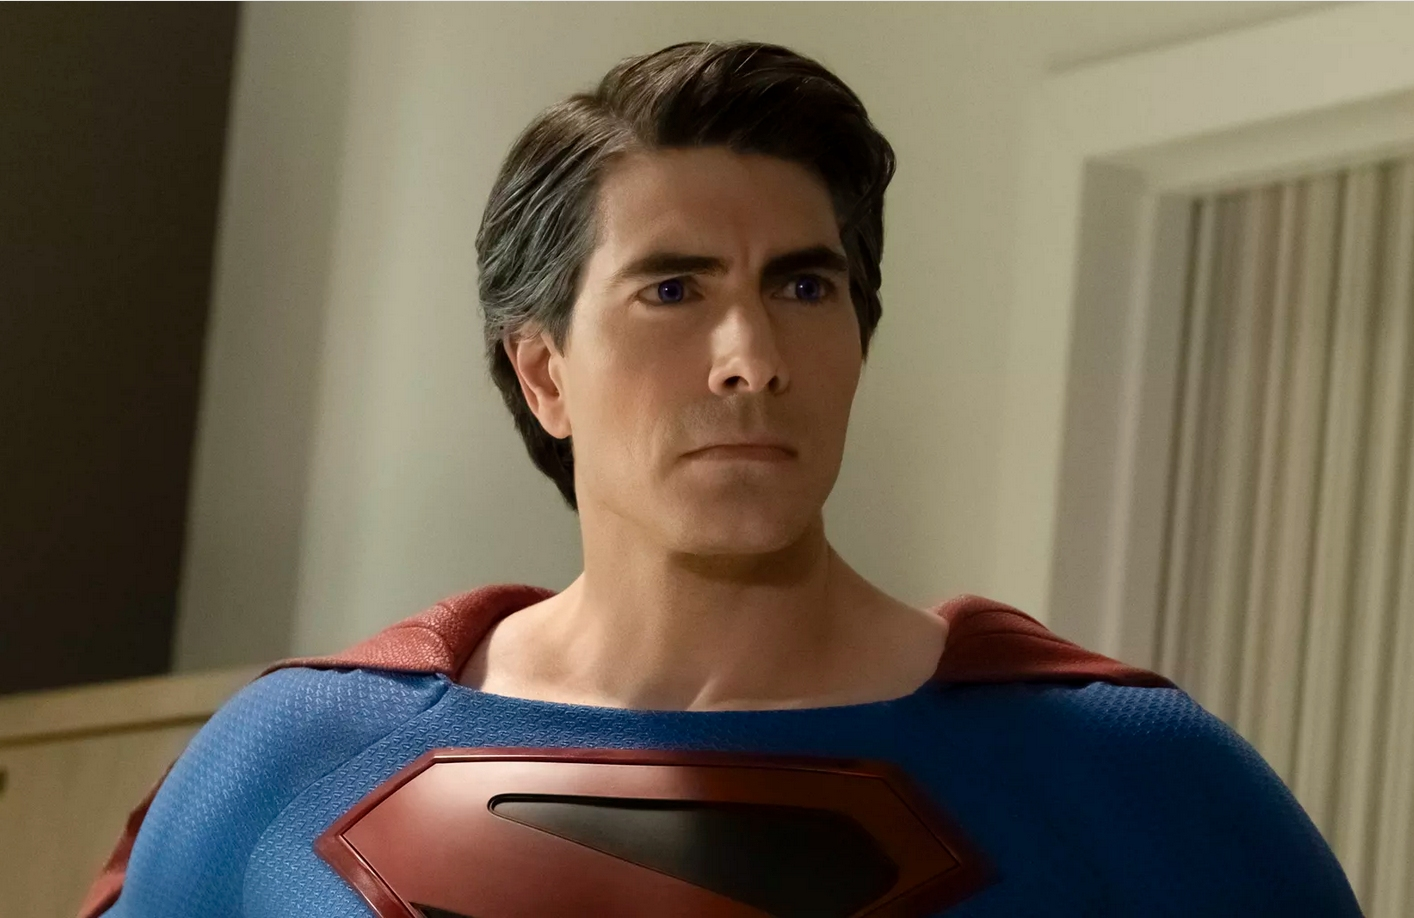 Brandon Routh as Superman in Crisis on Infinite Earths. (The CW)